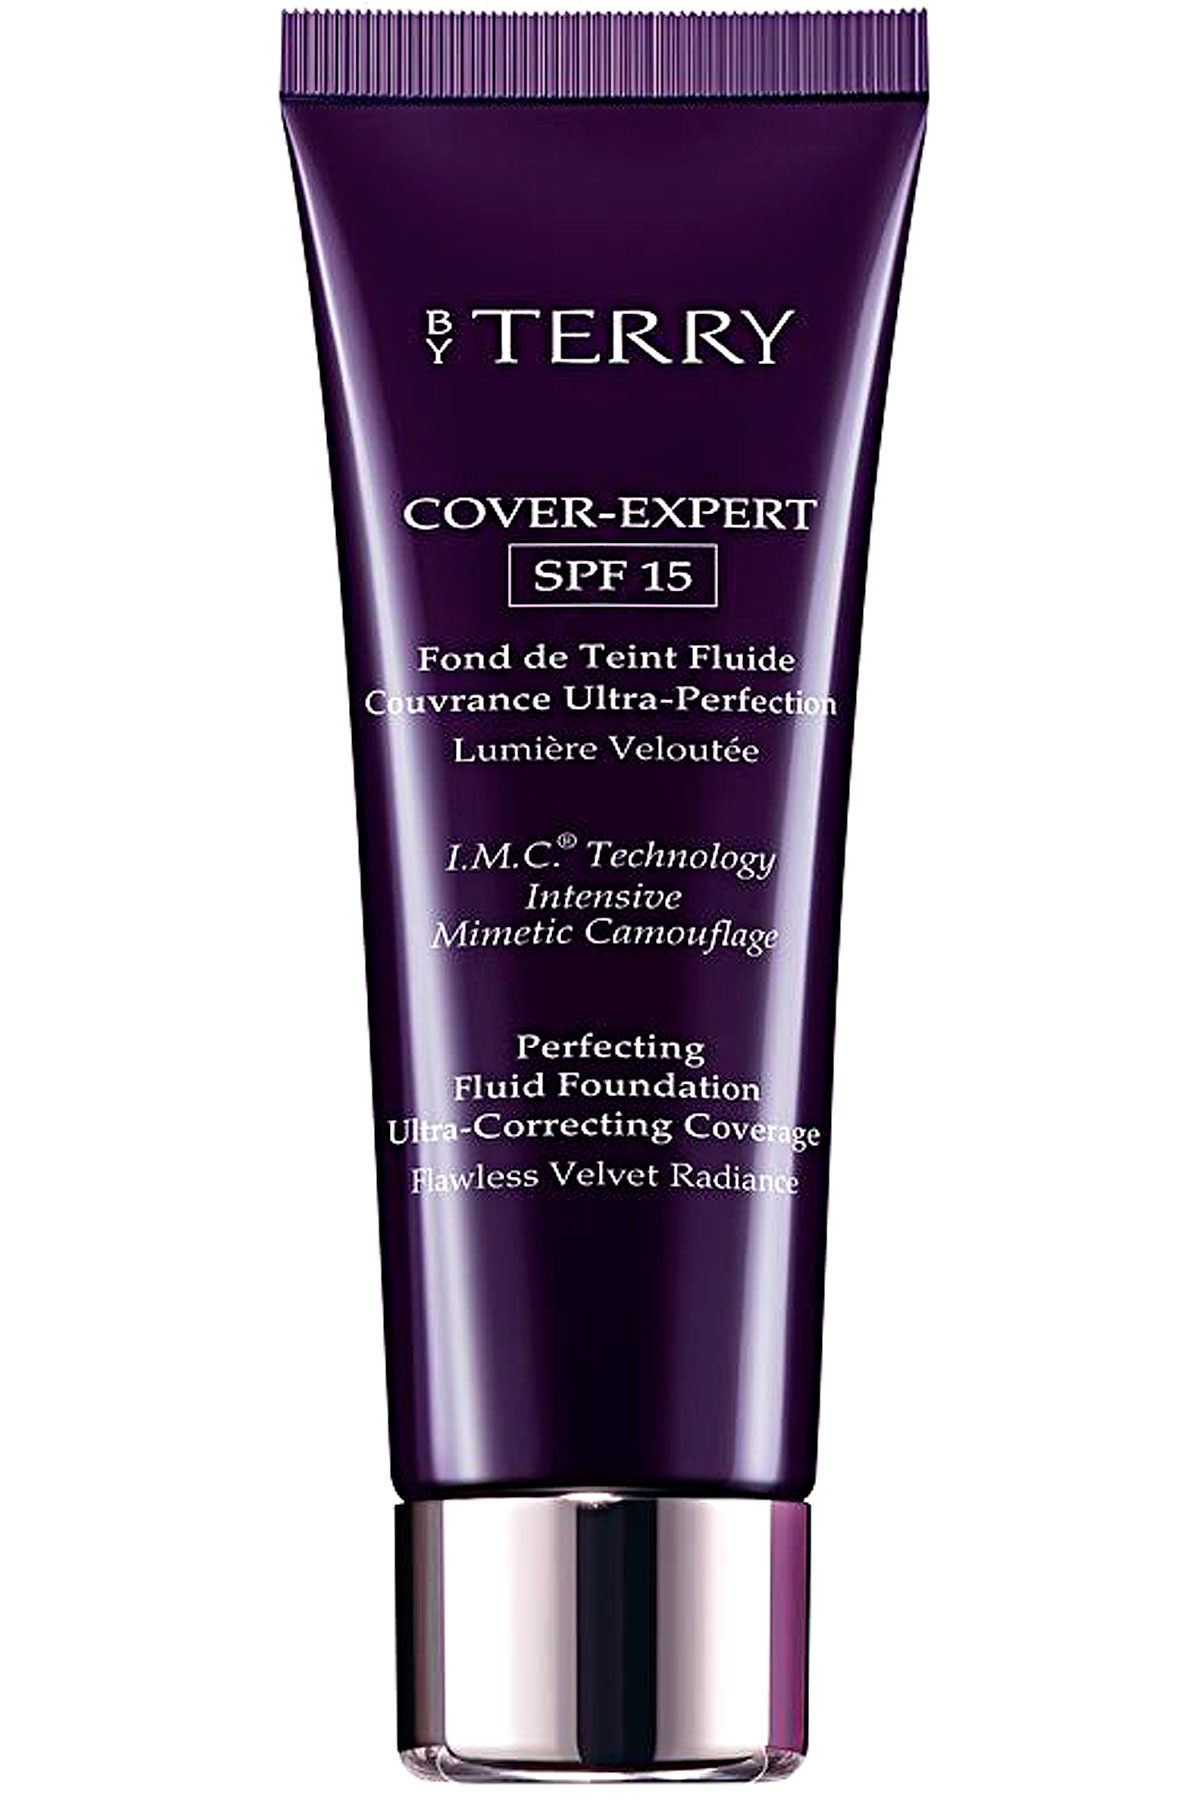 By Terry Makeup for Women, Cover-expert Spf15 - N.12 Warm Copper - 35 Ml, Warm Copper, 2019, 35 ml